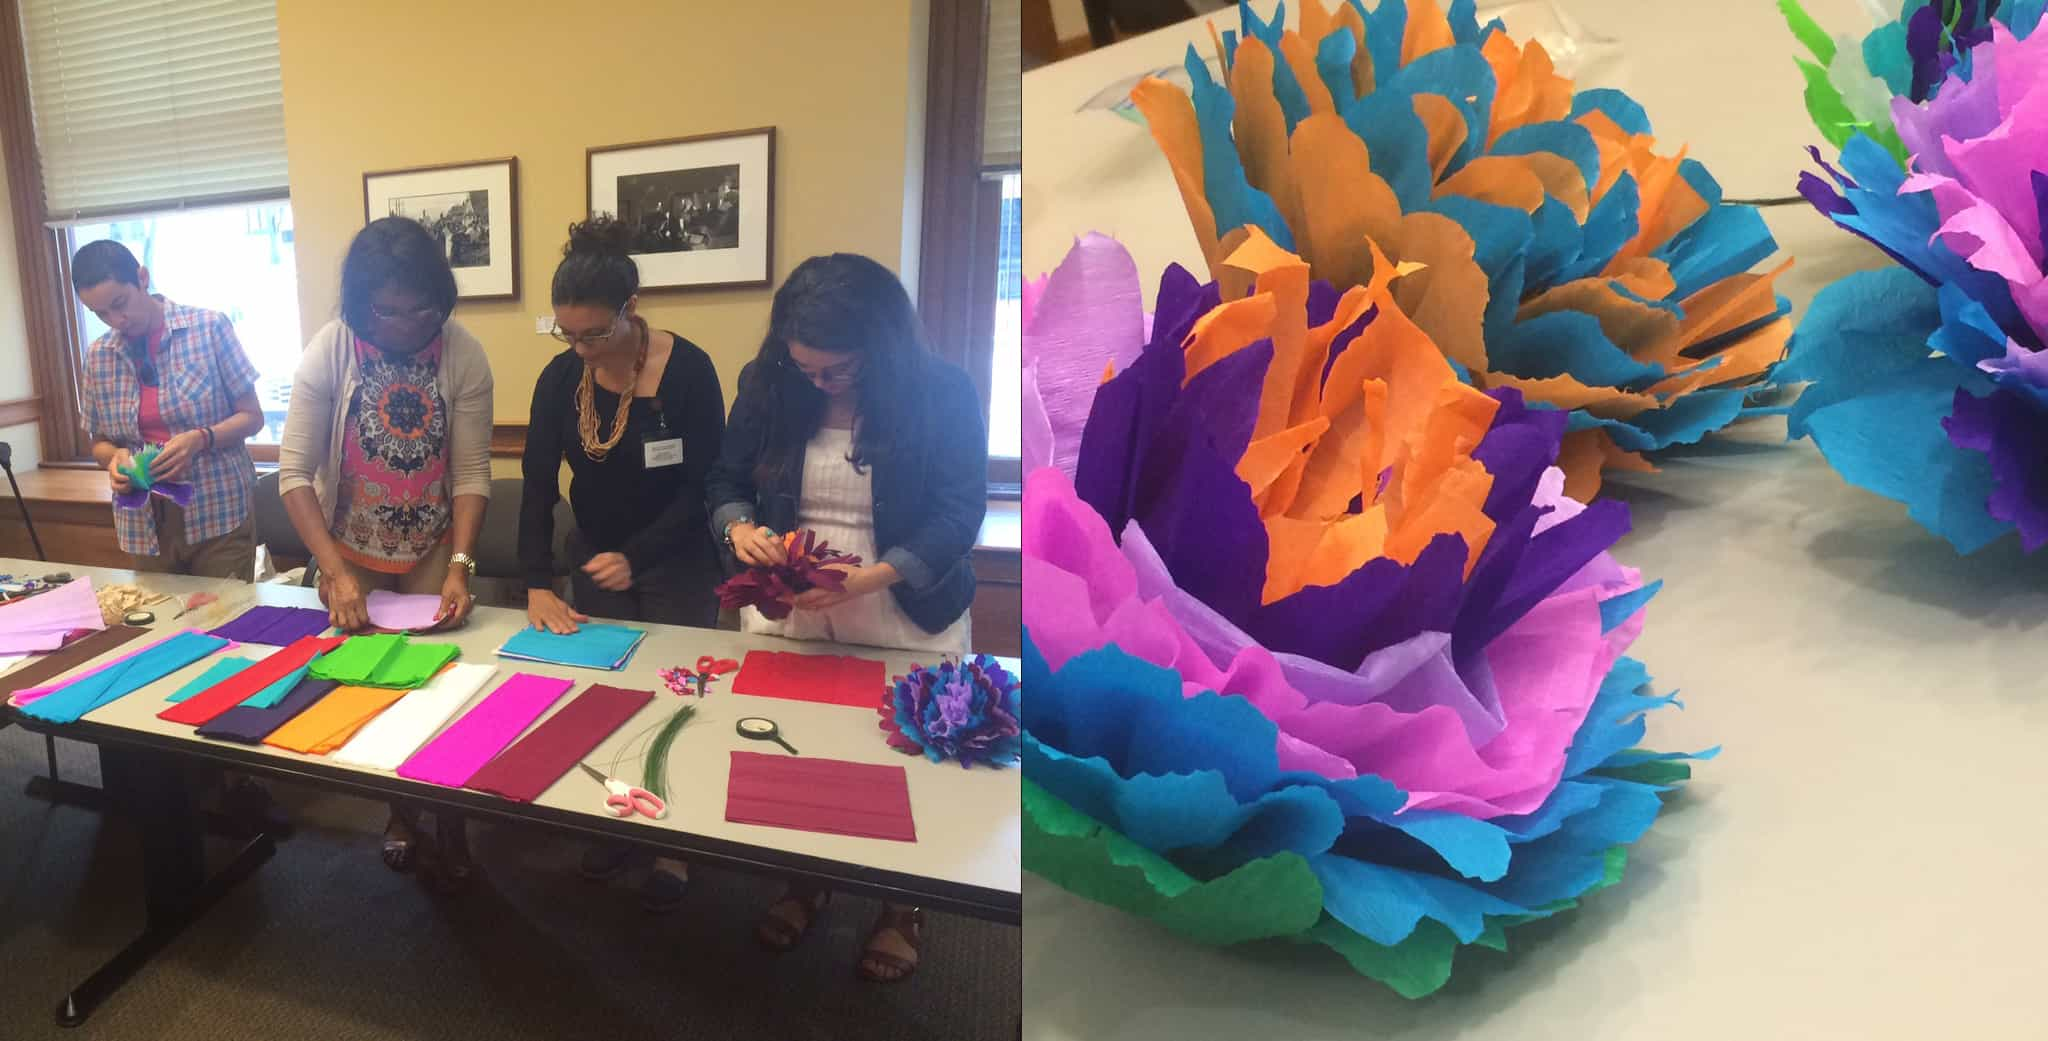 Meticulously crafted paper flowers will be incorporated into the Unidos Latinos Americanos  Día de los Muertos installation at the Portland Building October 19 – November 4.